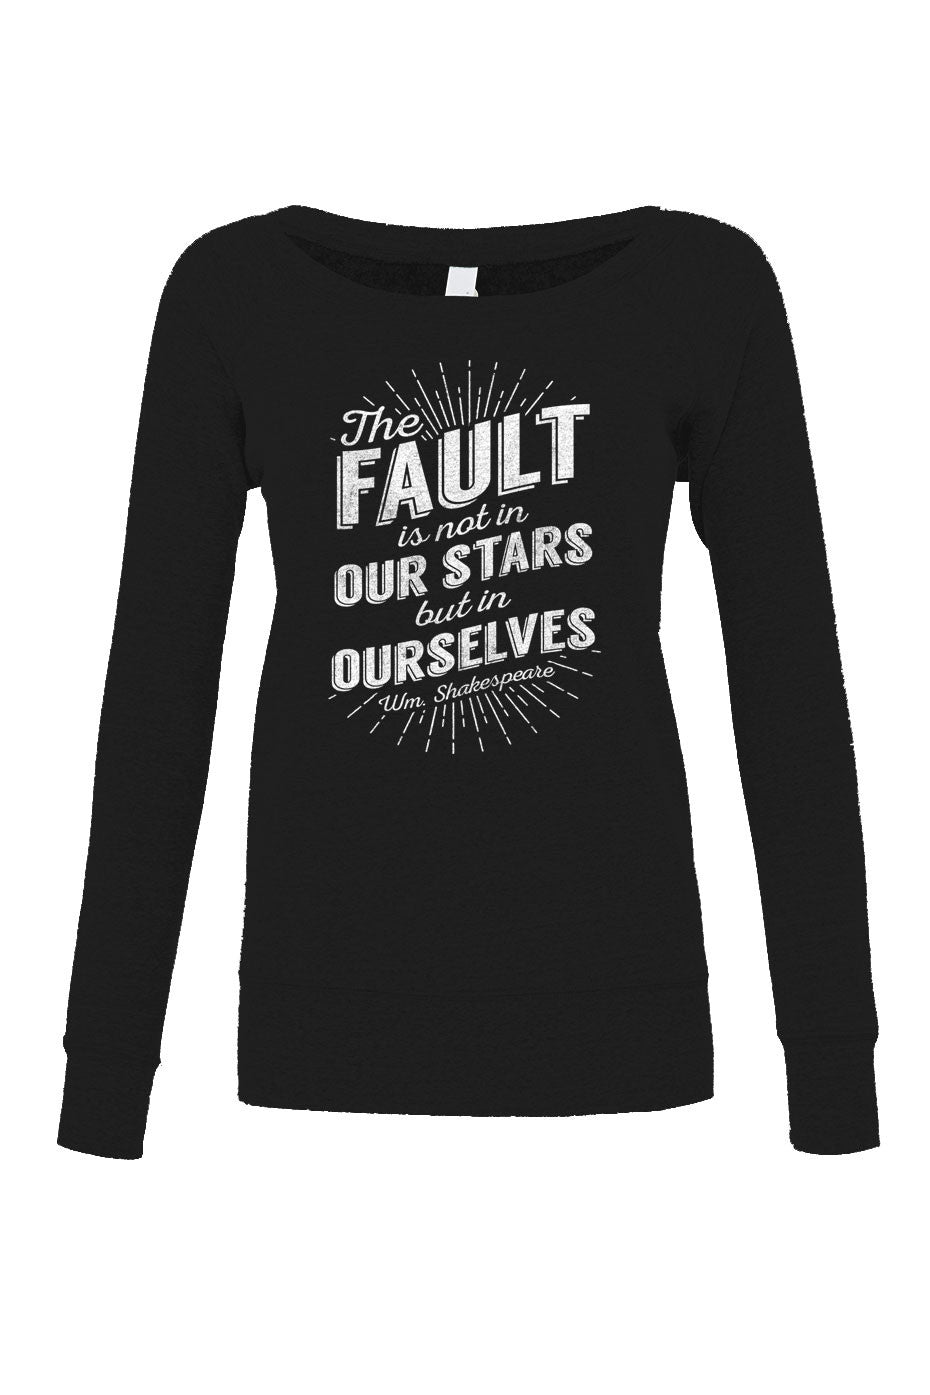 Women's The Fault is Not in Our Stars but in Ourselves Scoop Neck Fleece - Juniors Fit